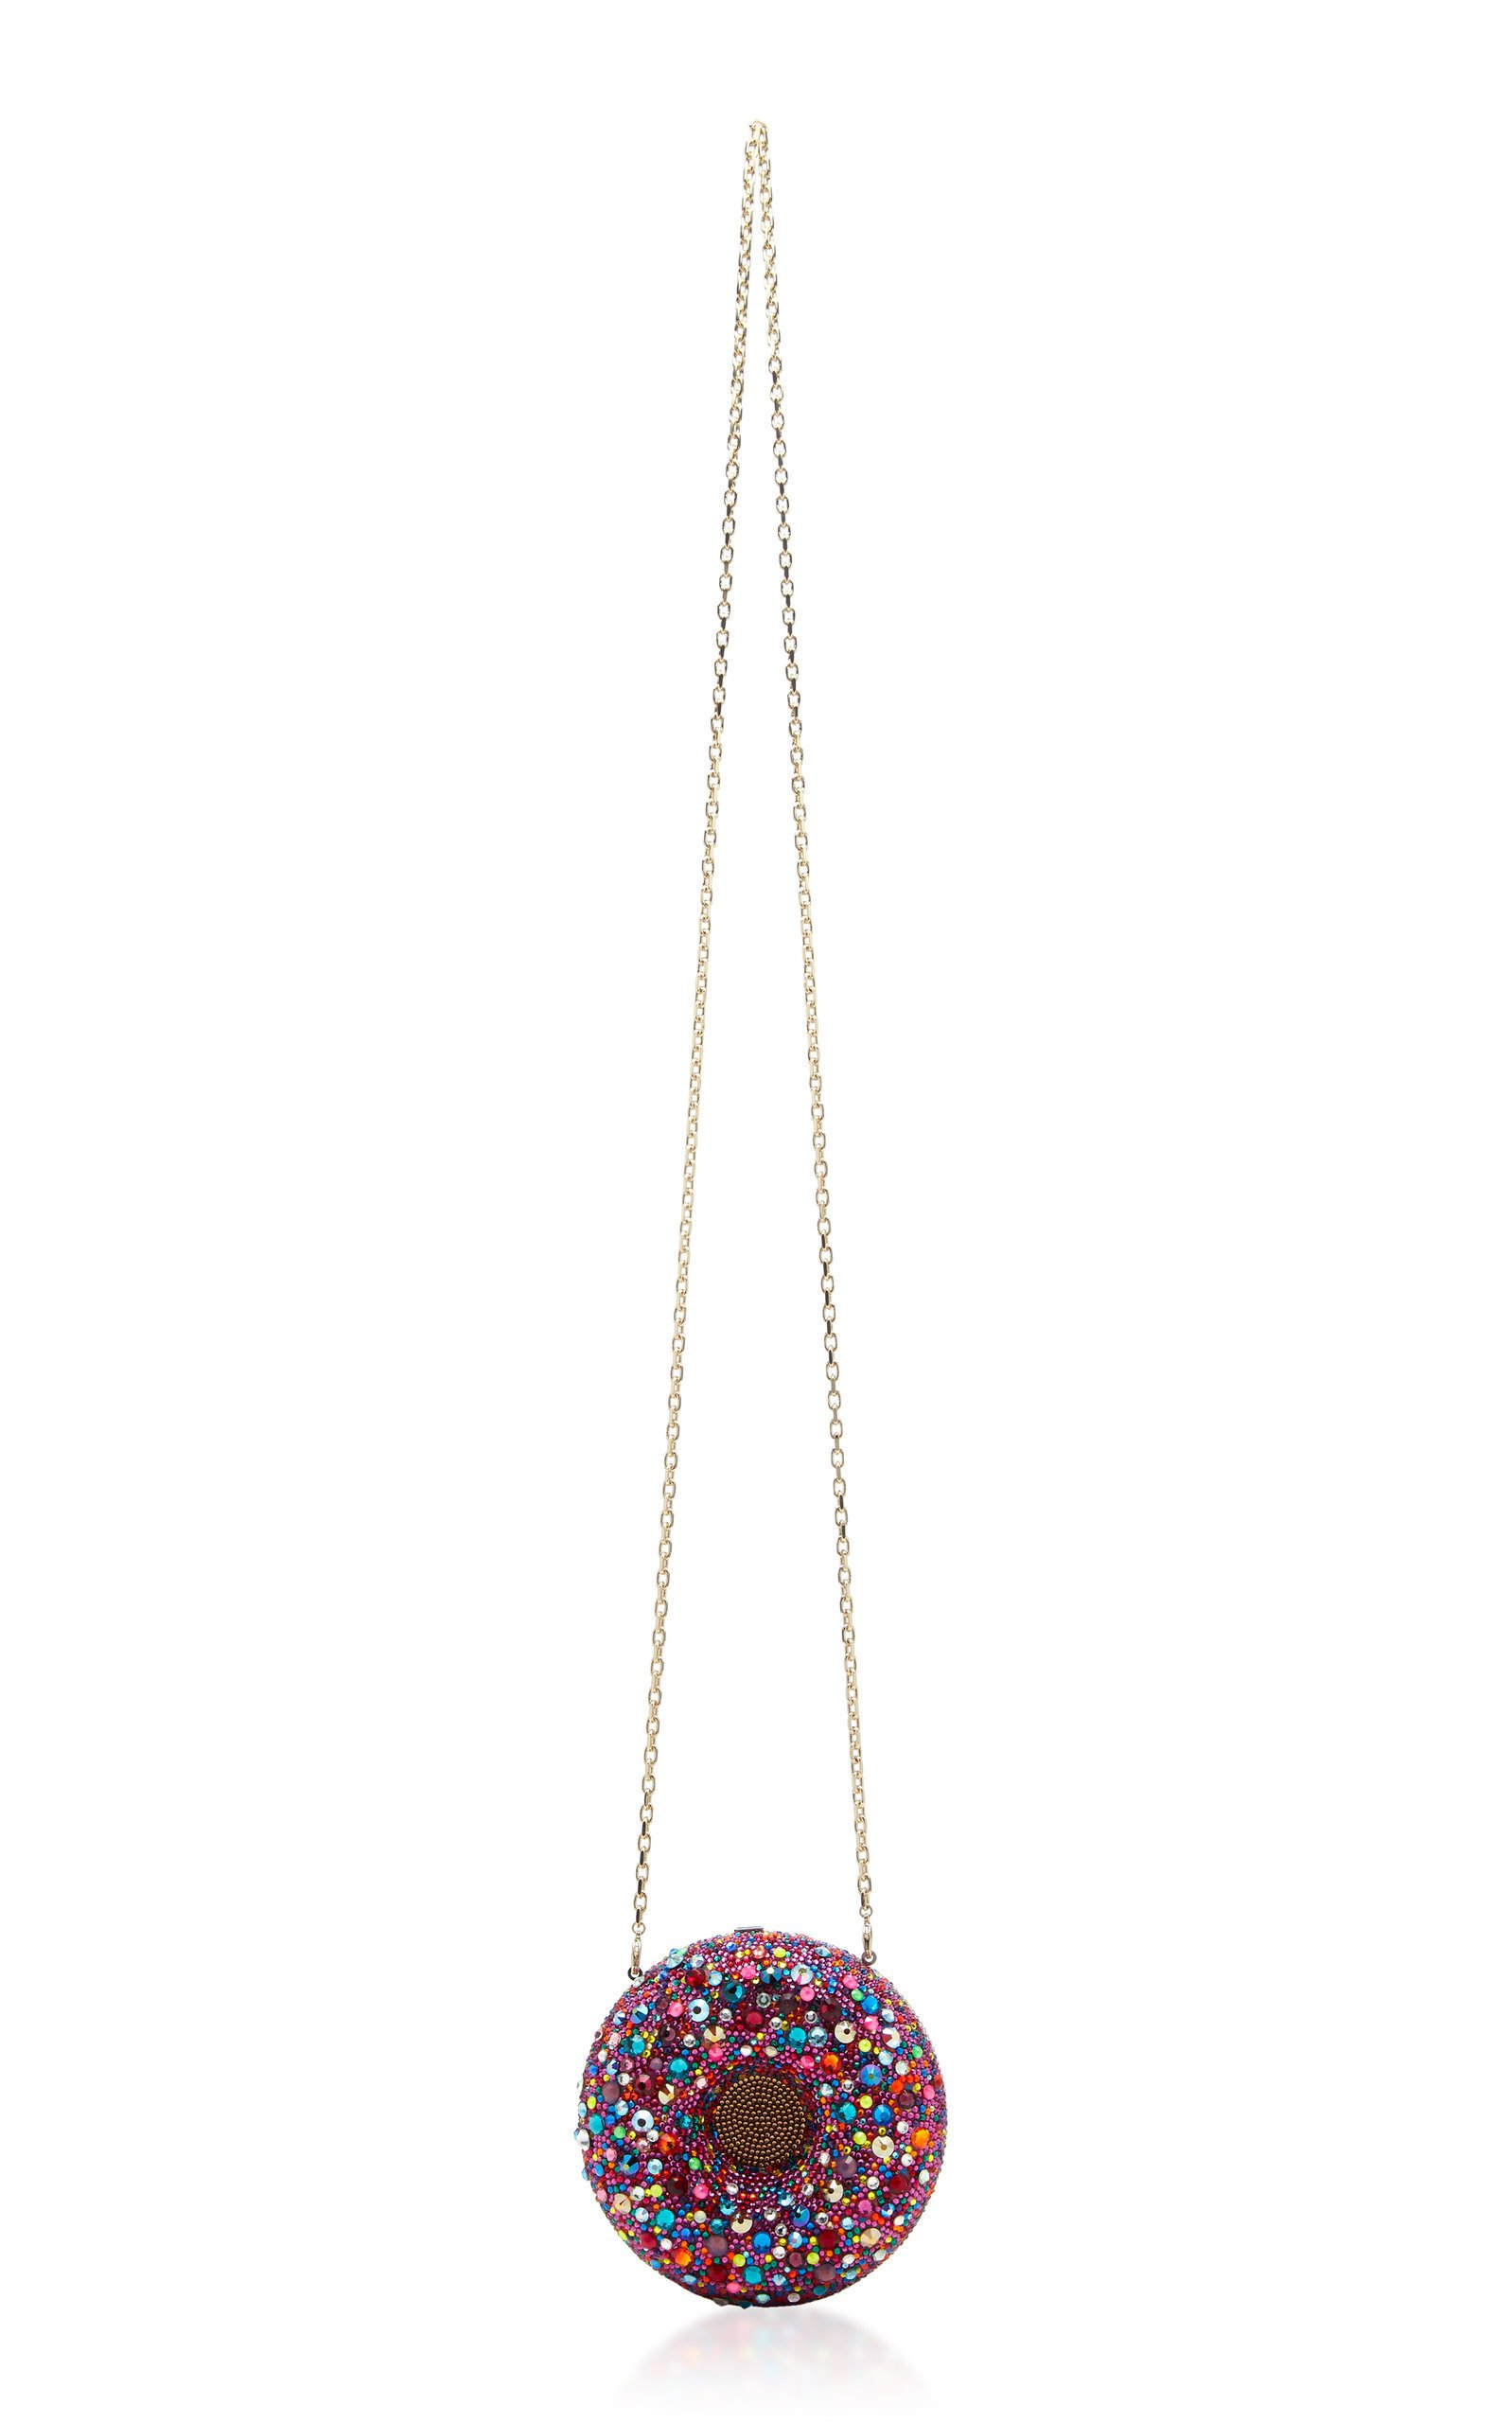 Confetti Donut Crystal-Embellished Clutch by Judith Leiber Couture   Moda Operandi